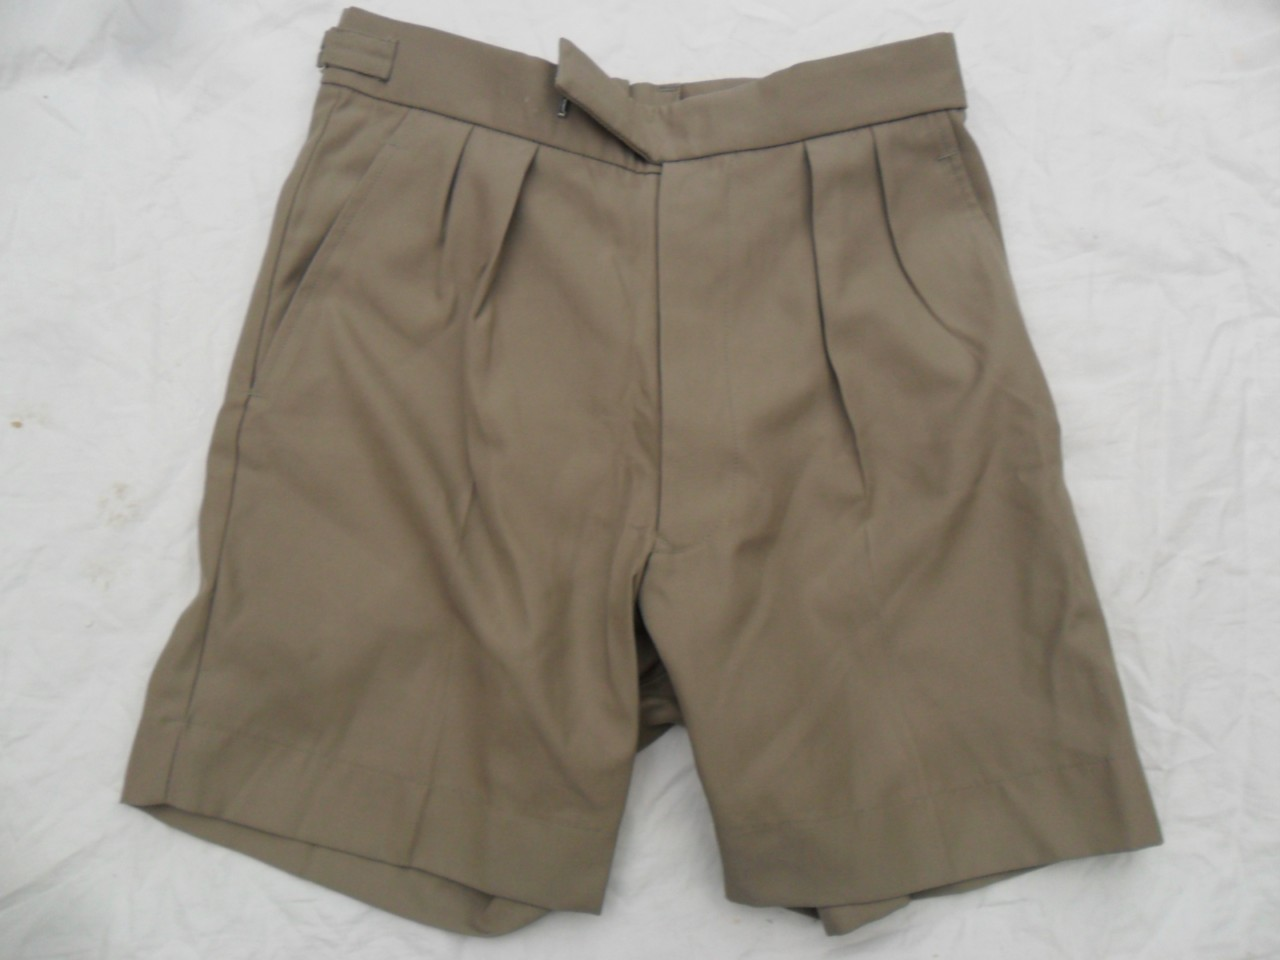 NEW-GENUINE-BRITISH-ARMY-MOD-SURPLUS-JUNGLE-SAFARI-DESERT-RATS-BUSH-KHAKI-SHORTS